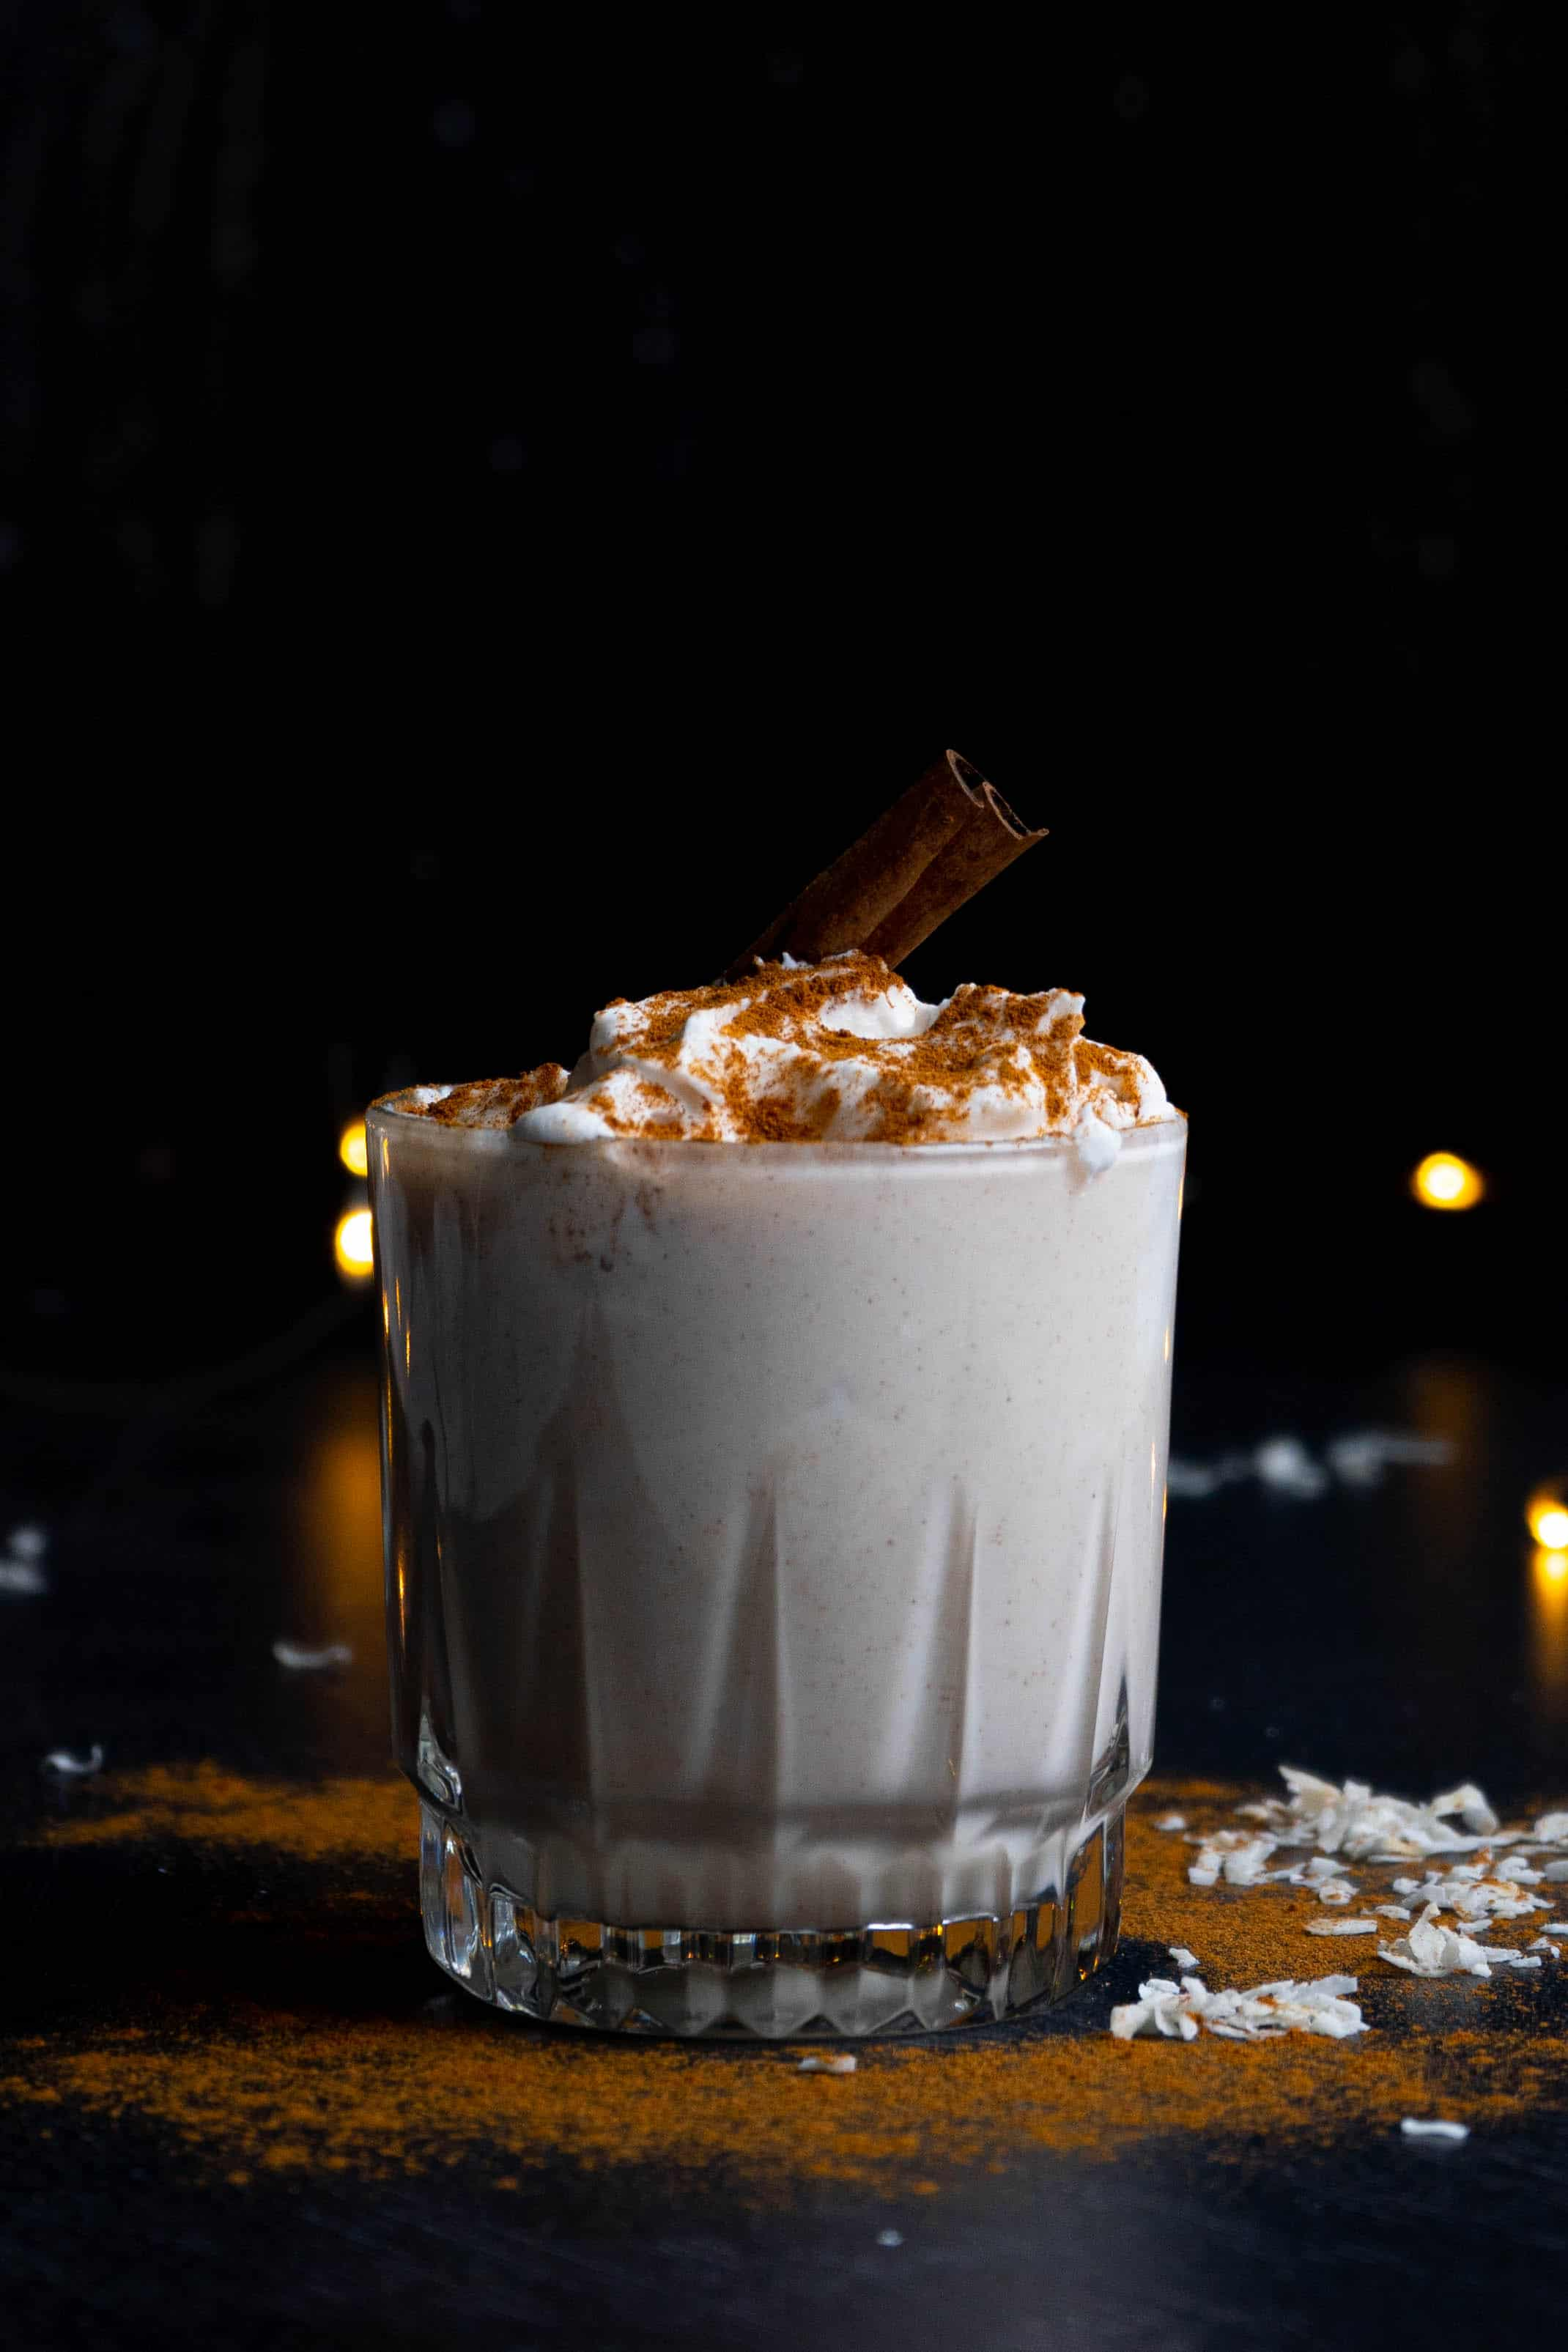 A glass of coquito with whipped cream and cinnamon